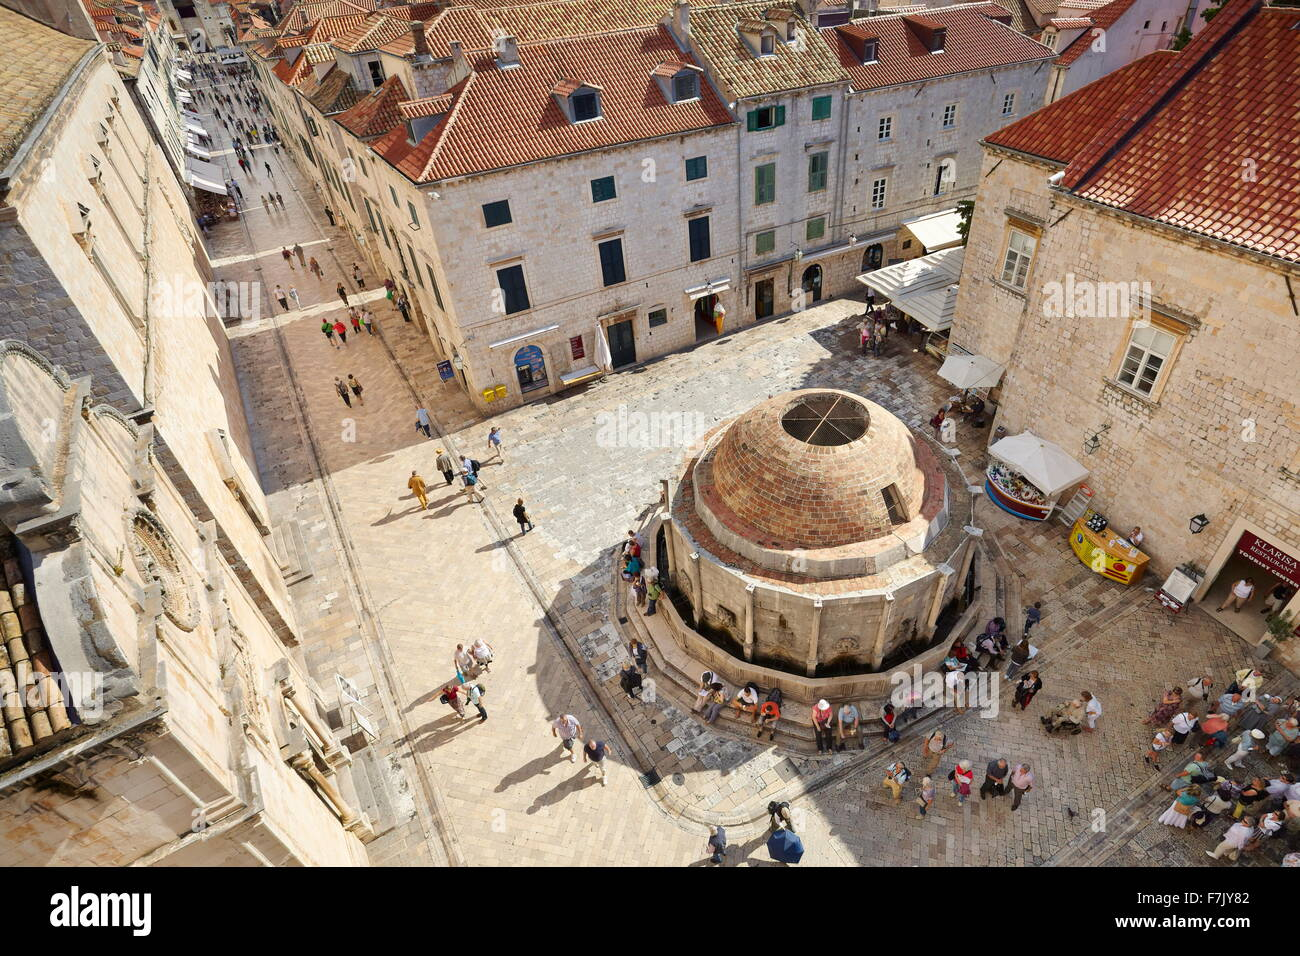 Dubrovnik Onofrio Fountain, view from Old Town City Walls, Dalmatia, Croatia - Stock Image